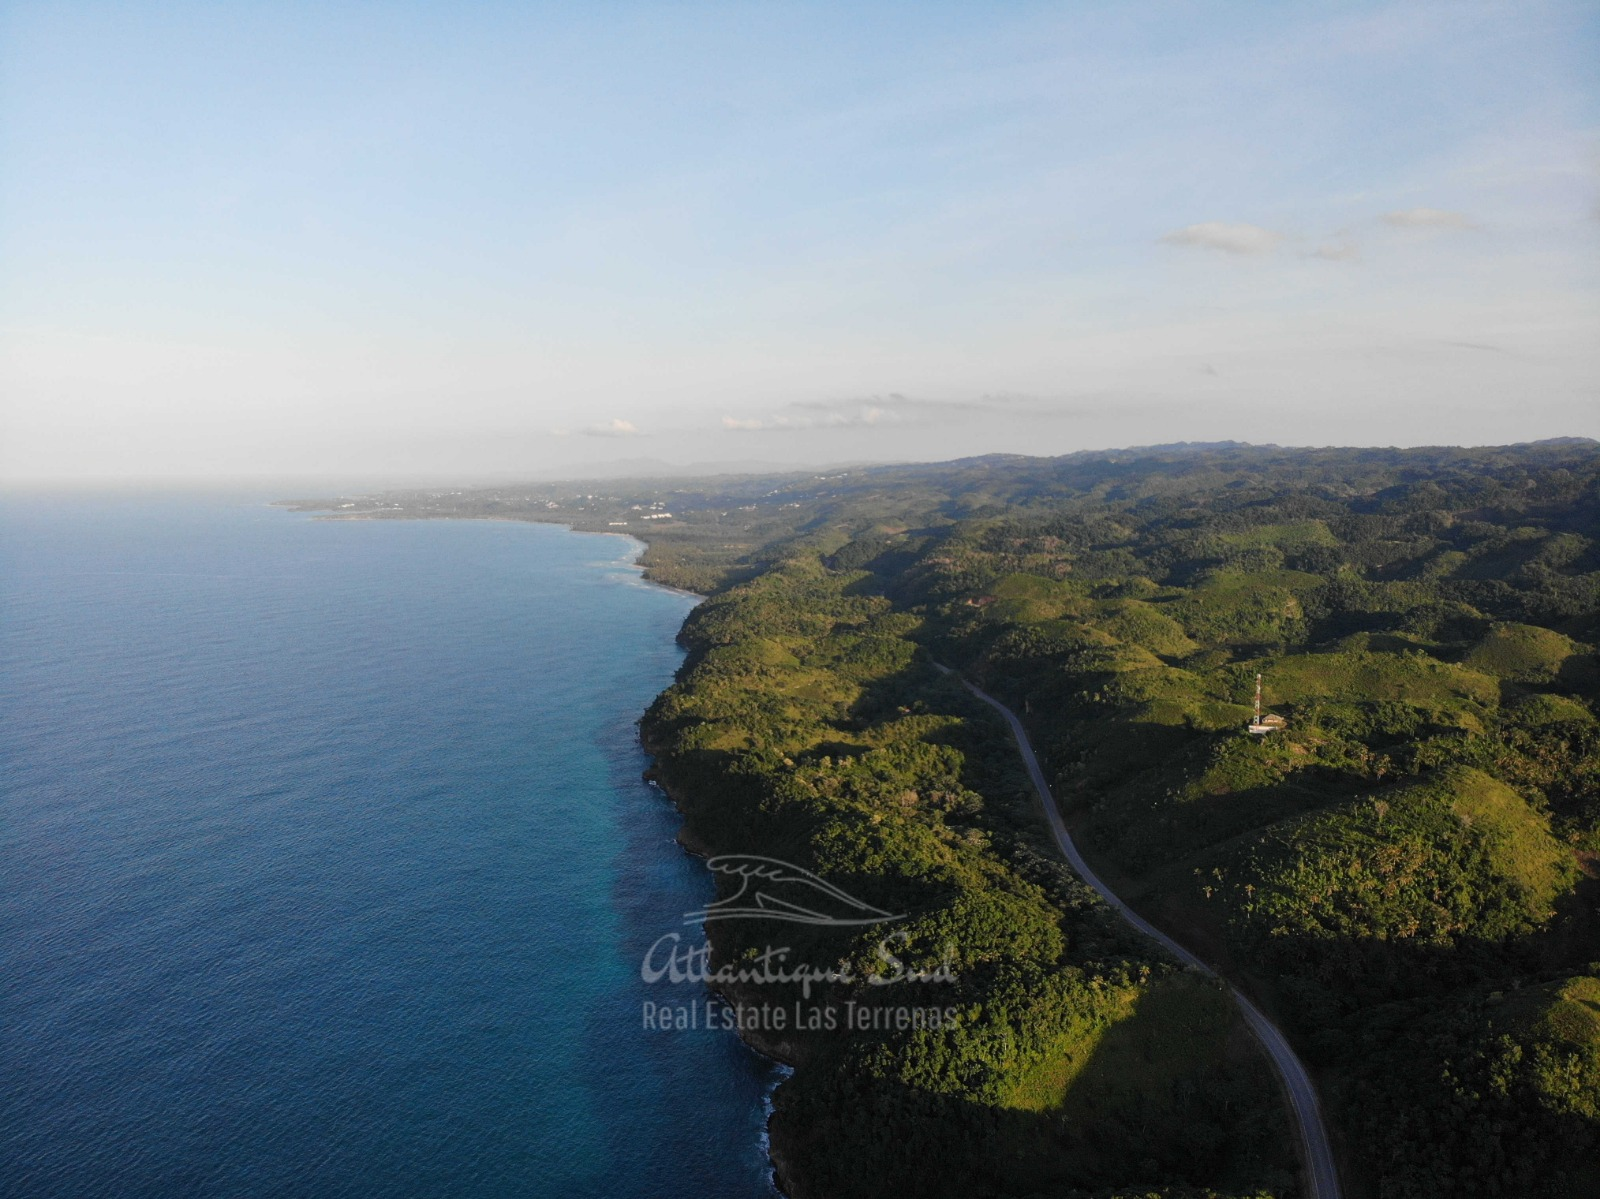 Cliff Land for Sale Las Terrenas 17.jpeg